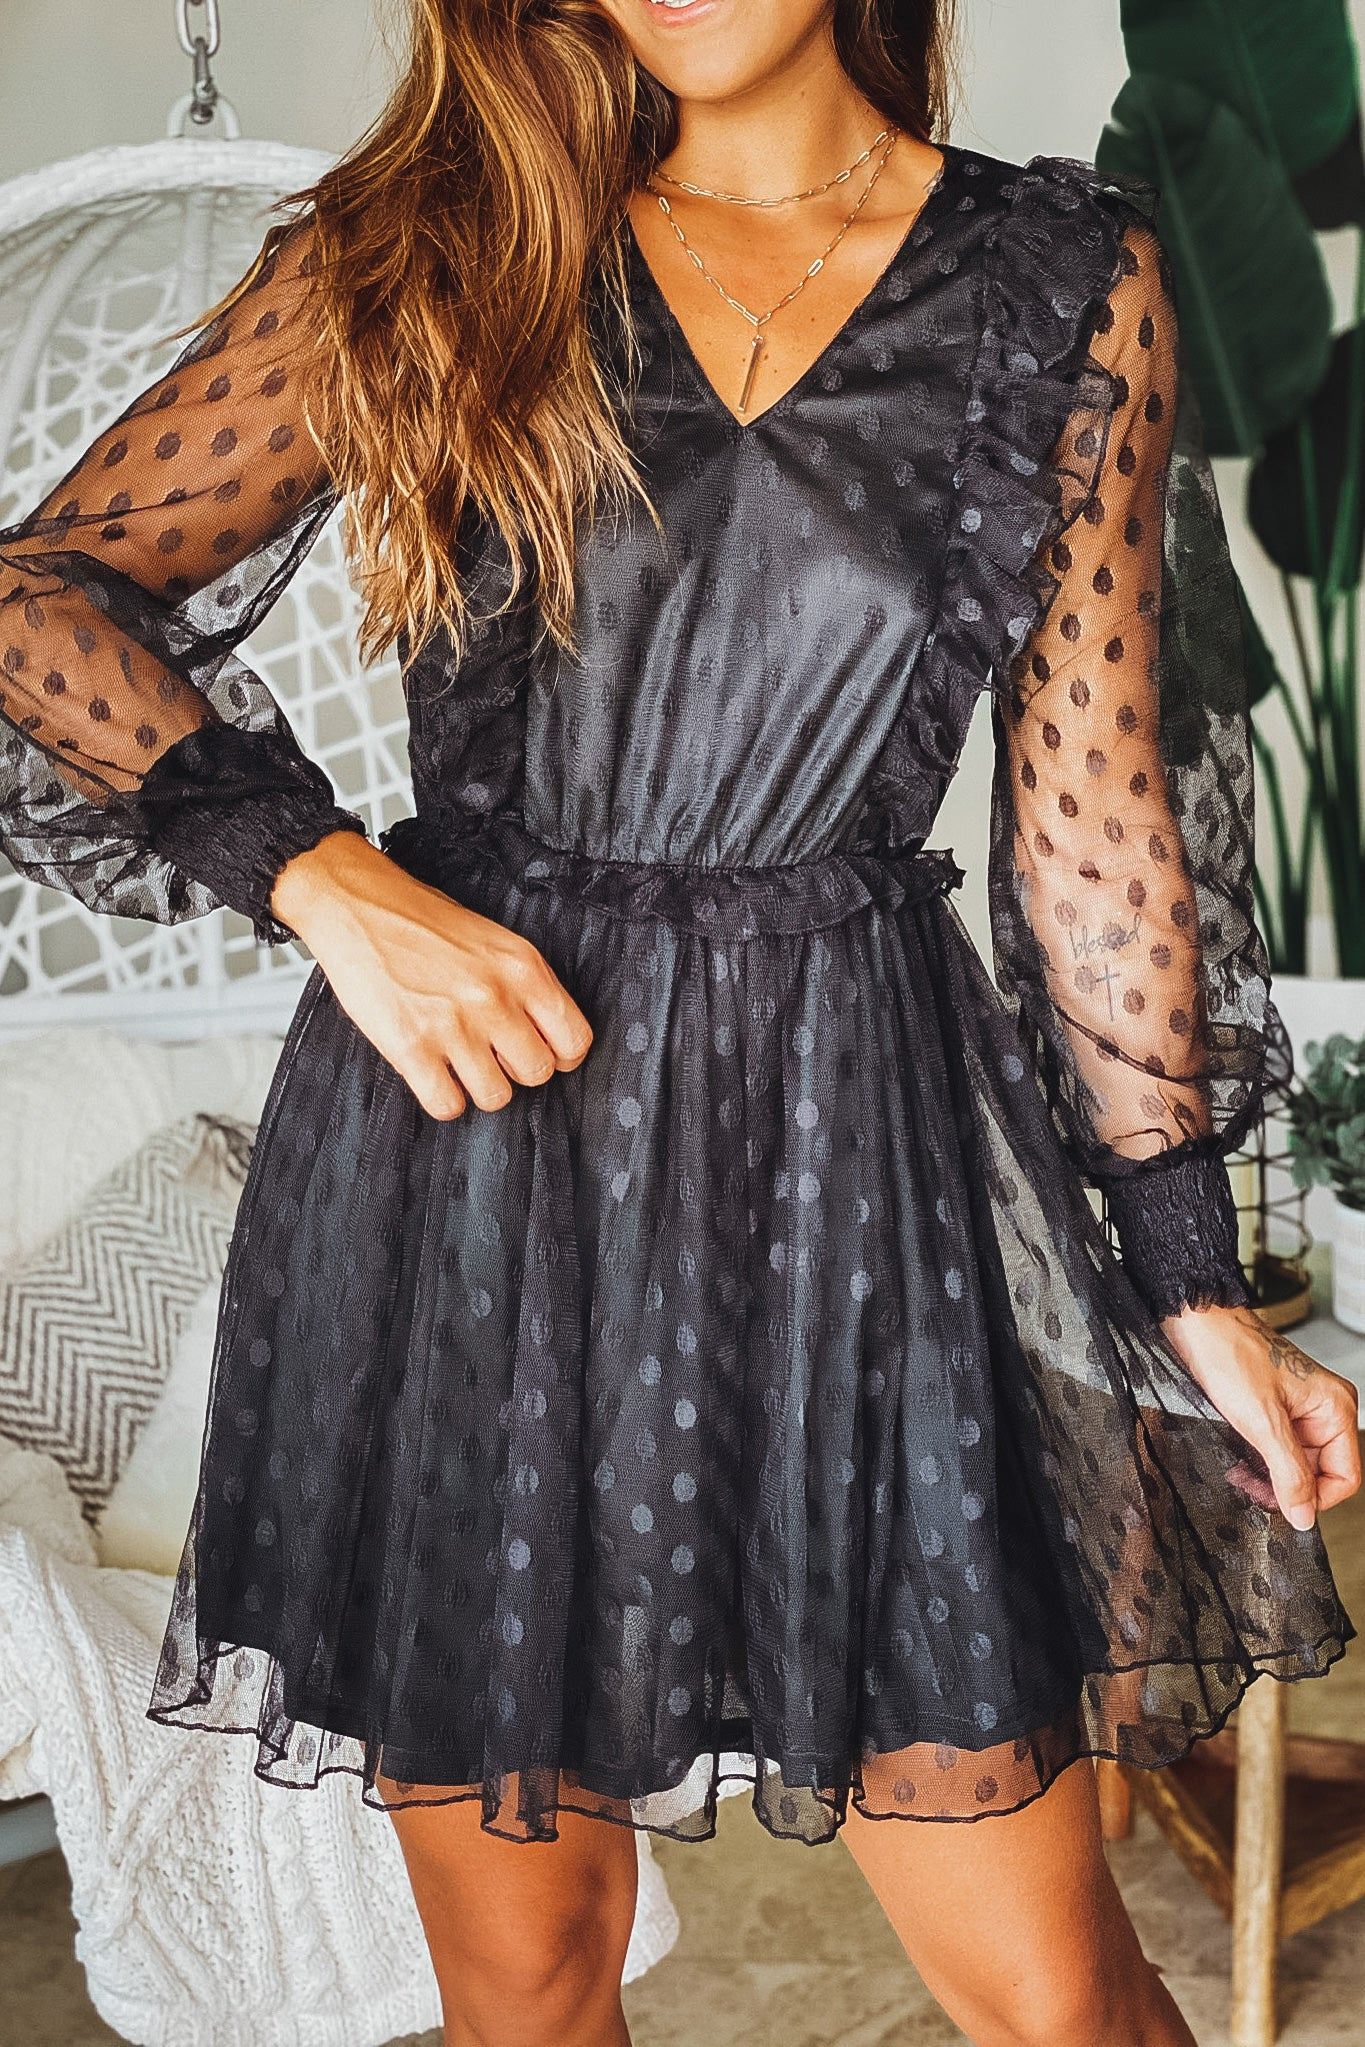 Lifestyle black mesh polka dot short dress